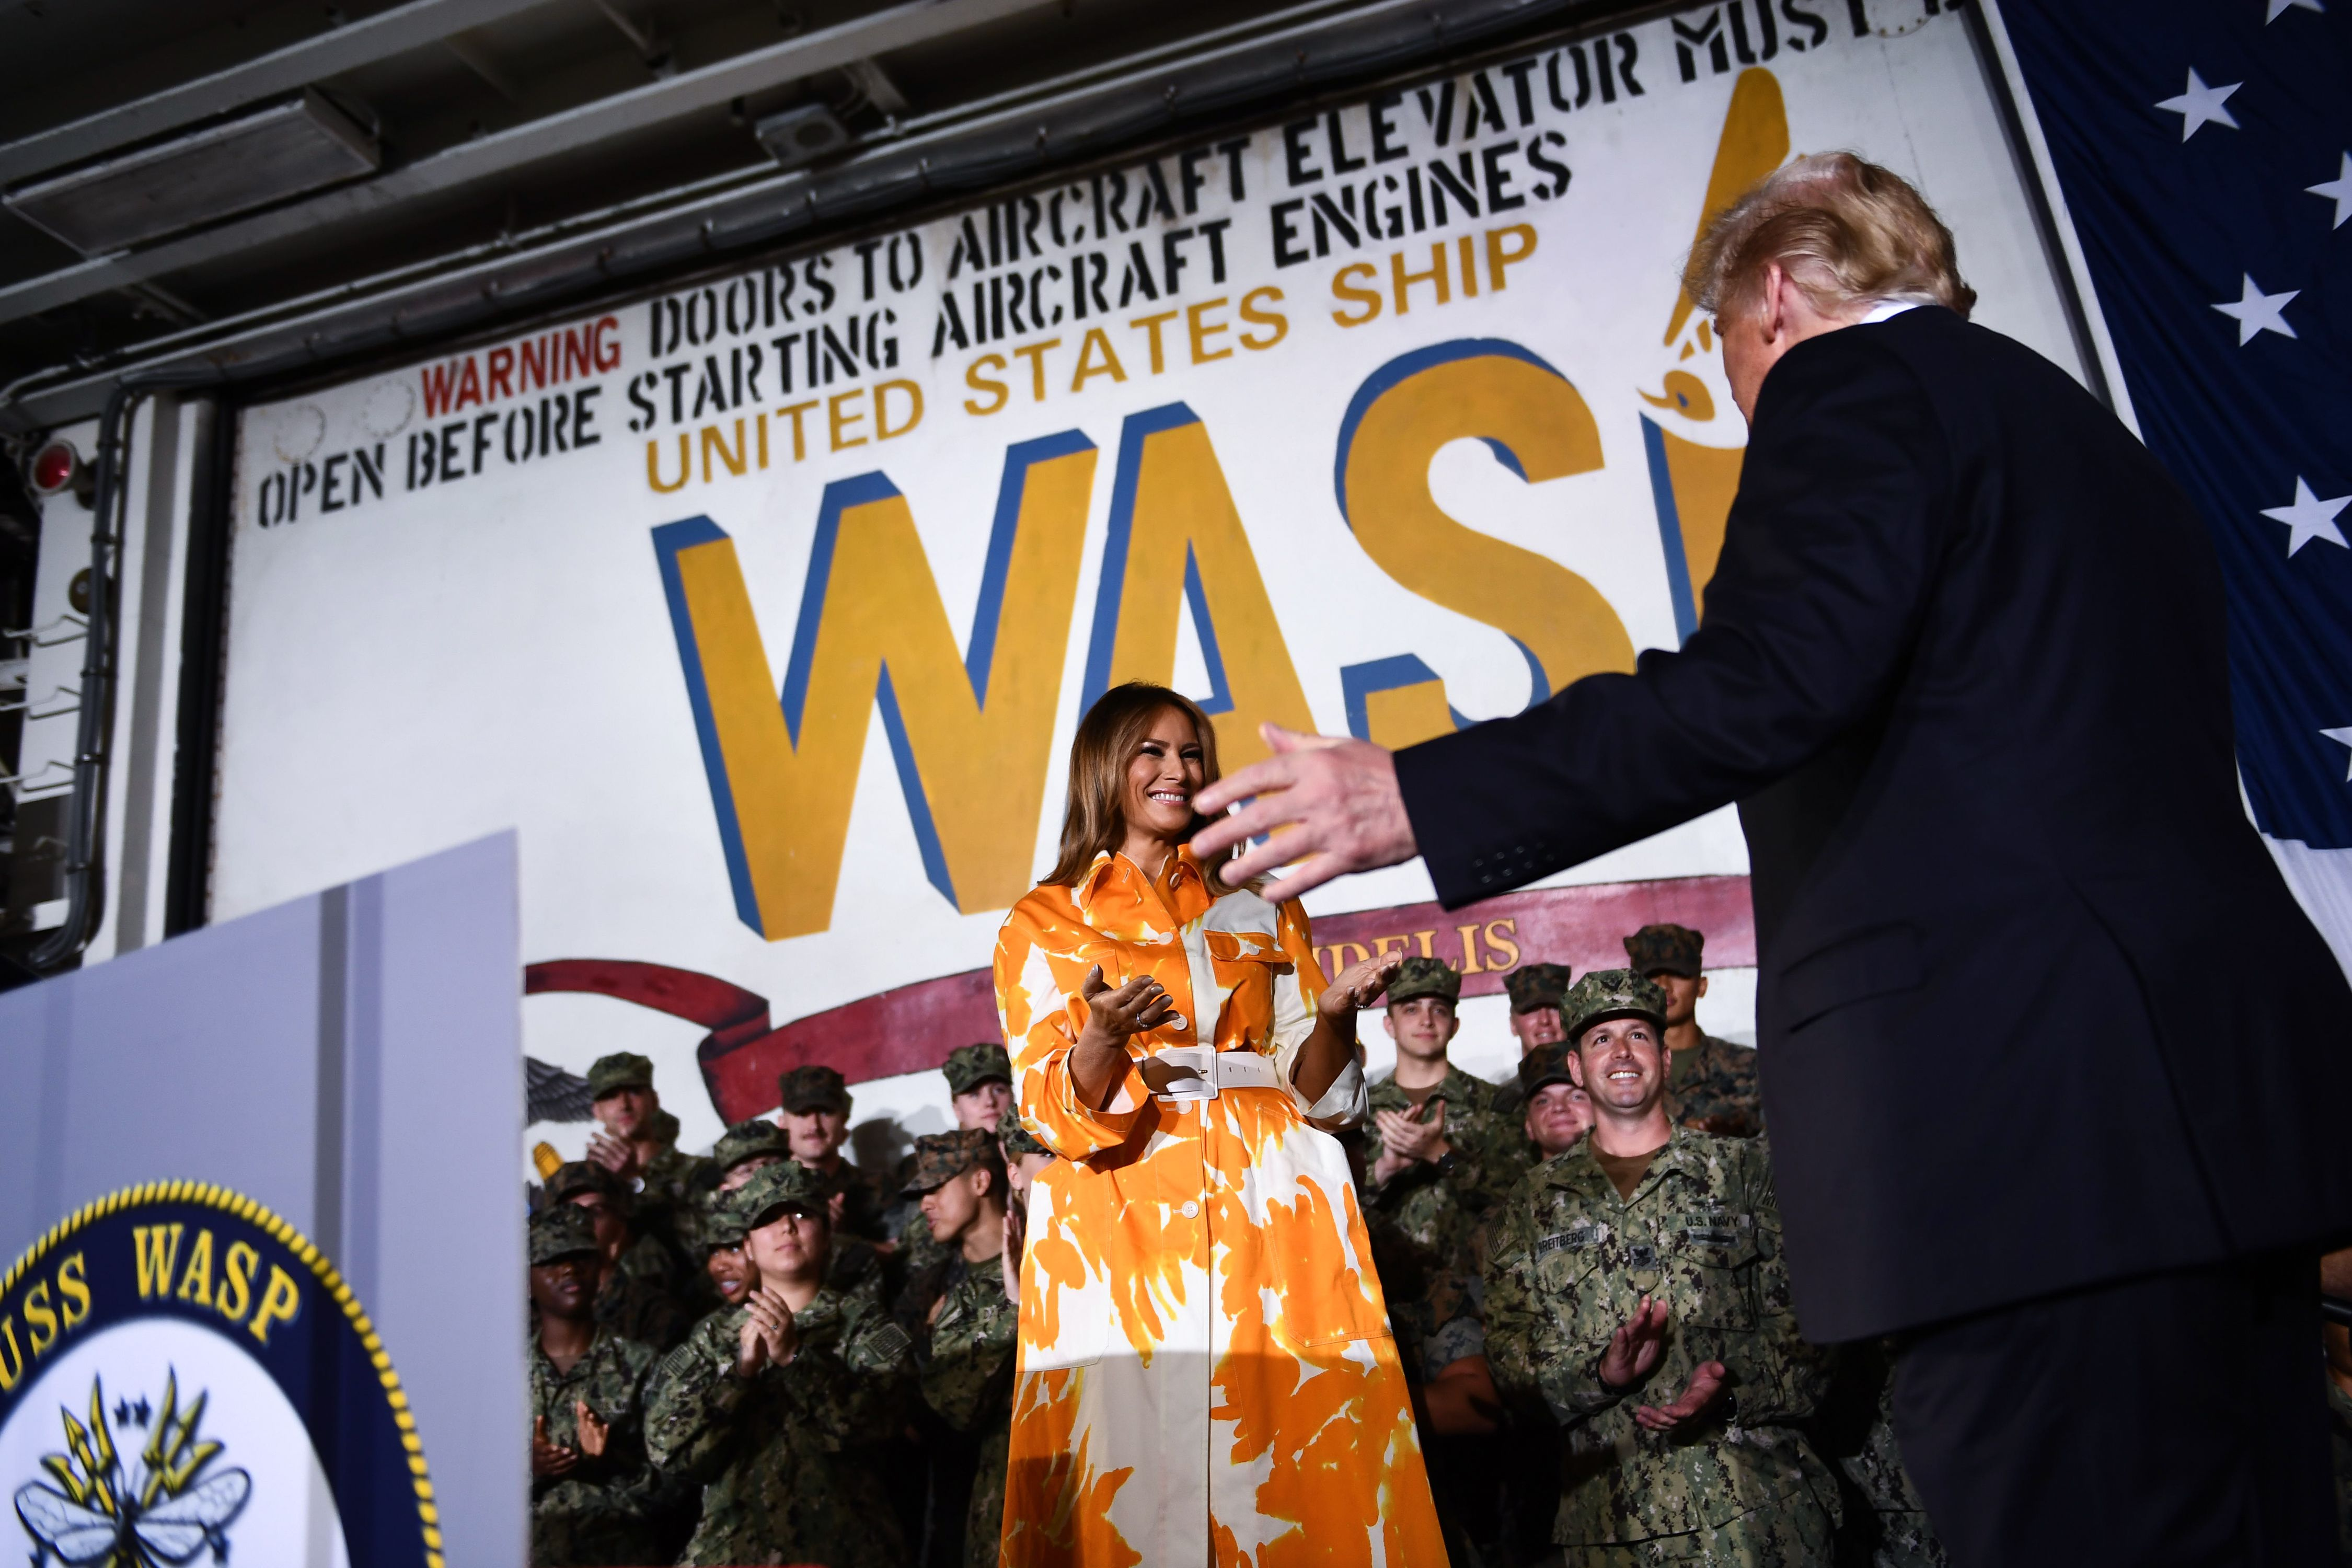 US President Donald Trump and First Lady Melania Trump arrive on stage during a Memorial Day event aboard the amphibious assault ship USS Wasp (LHD 1) in Yokosuka on May 28, 2019. (Photo by BRENDAN SMIALOWSKI/AFP/Getty Images)